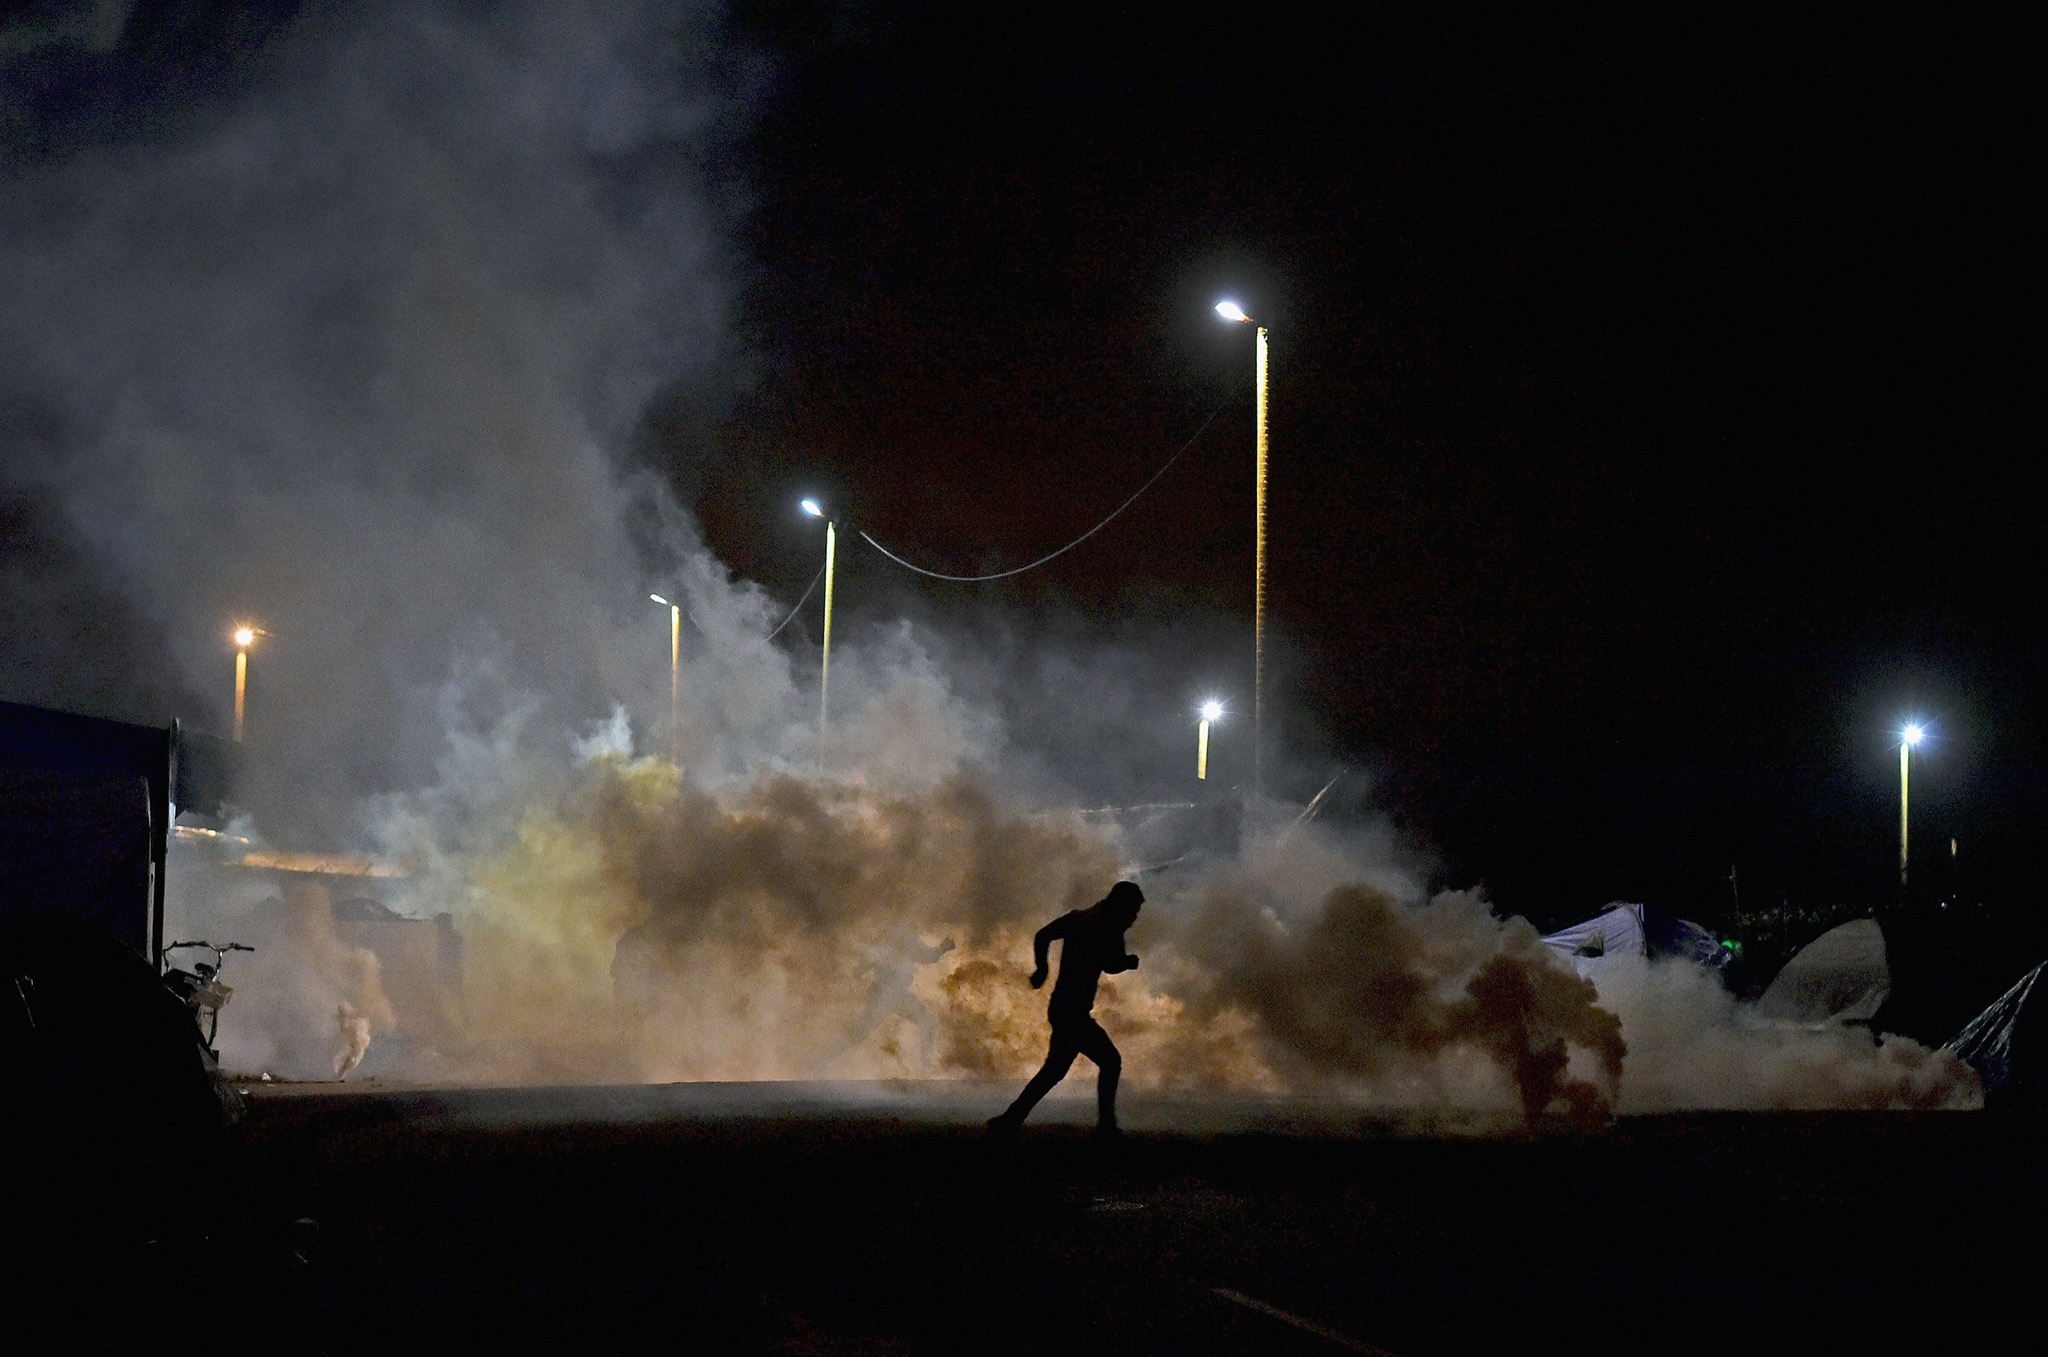 Migrants run as police fired tear gas into the entrance to the camp known as the 'New Jungle' on December 2, 2015 in Calais, France.